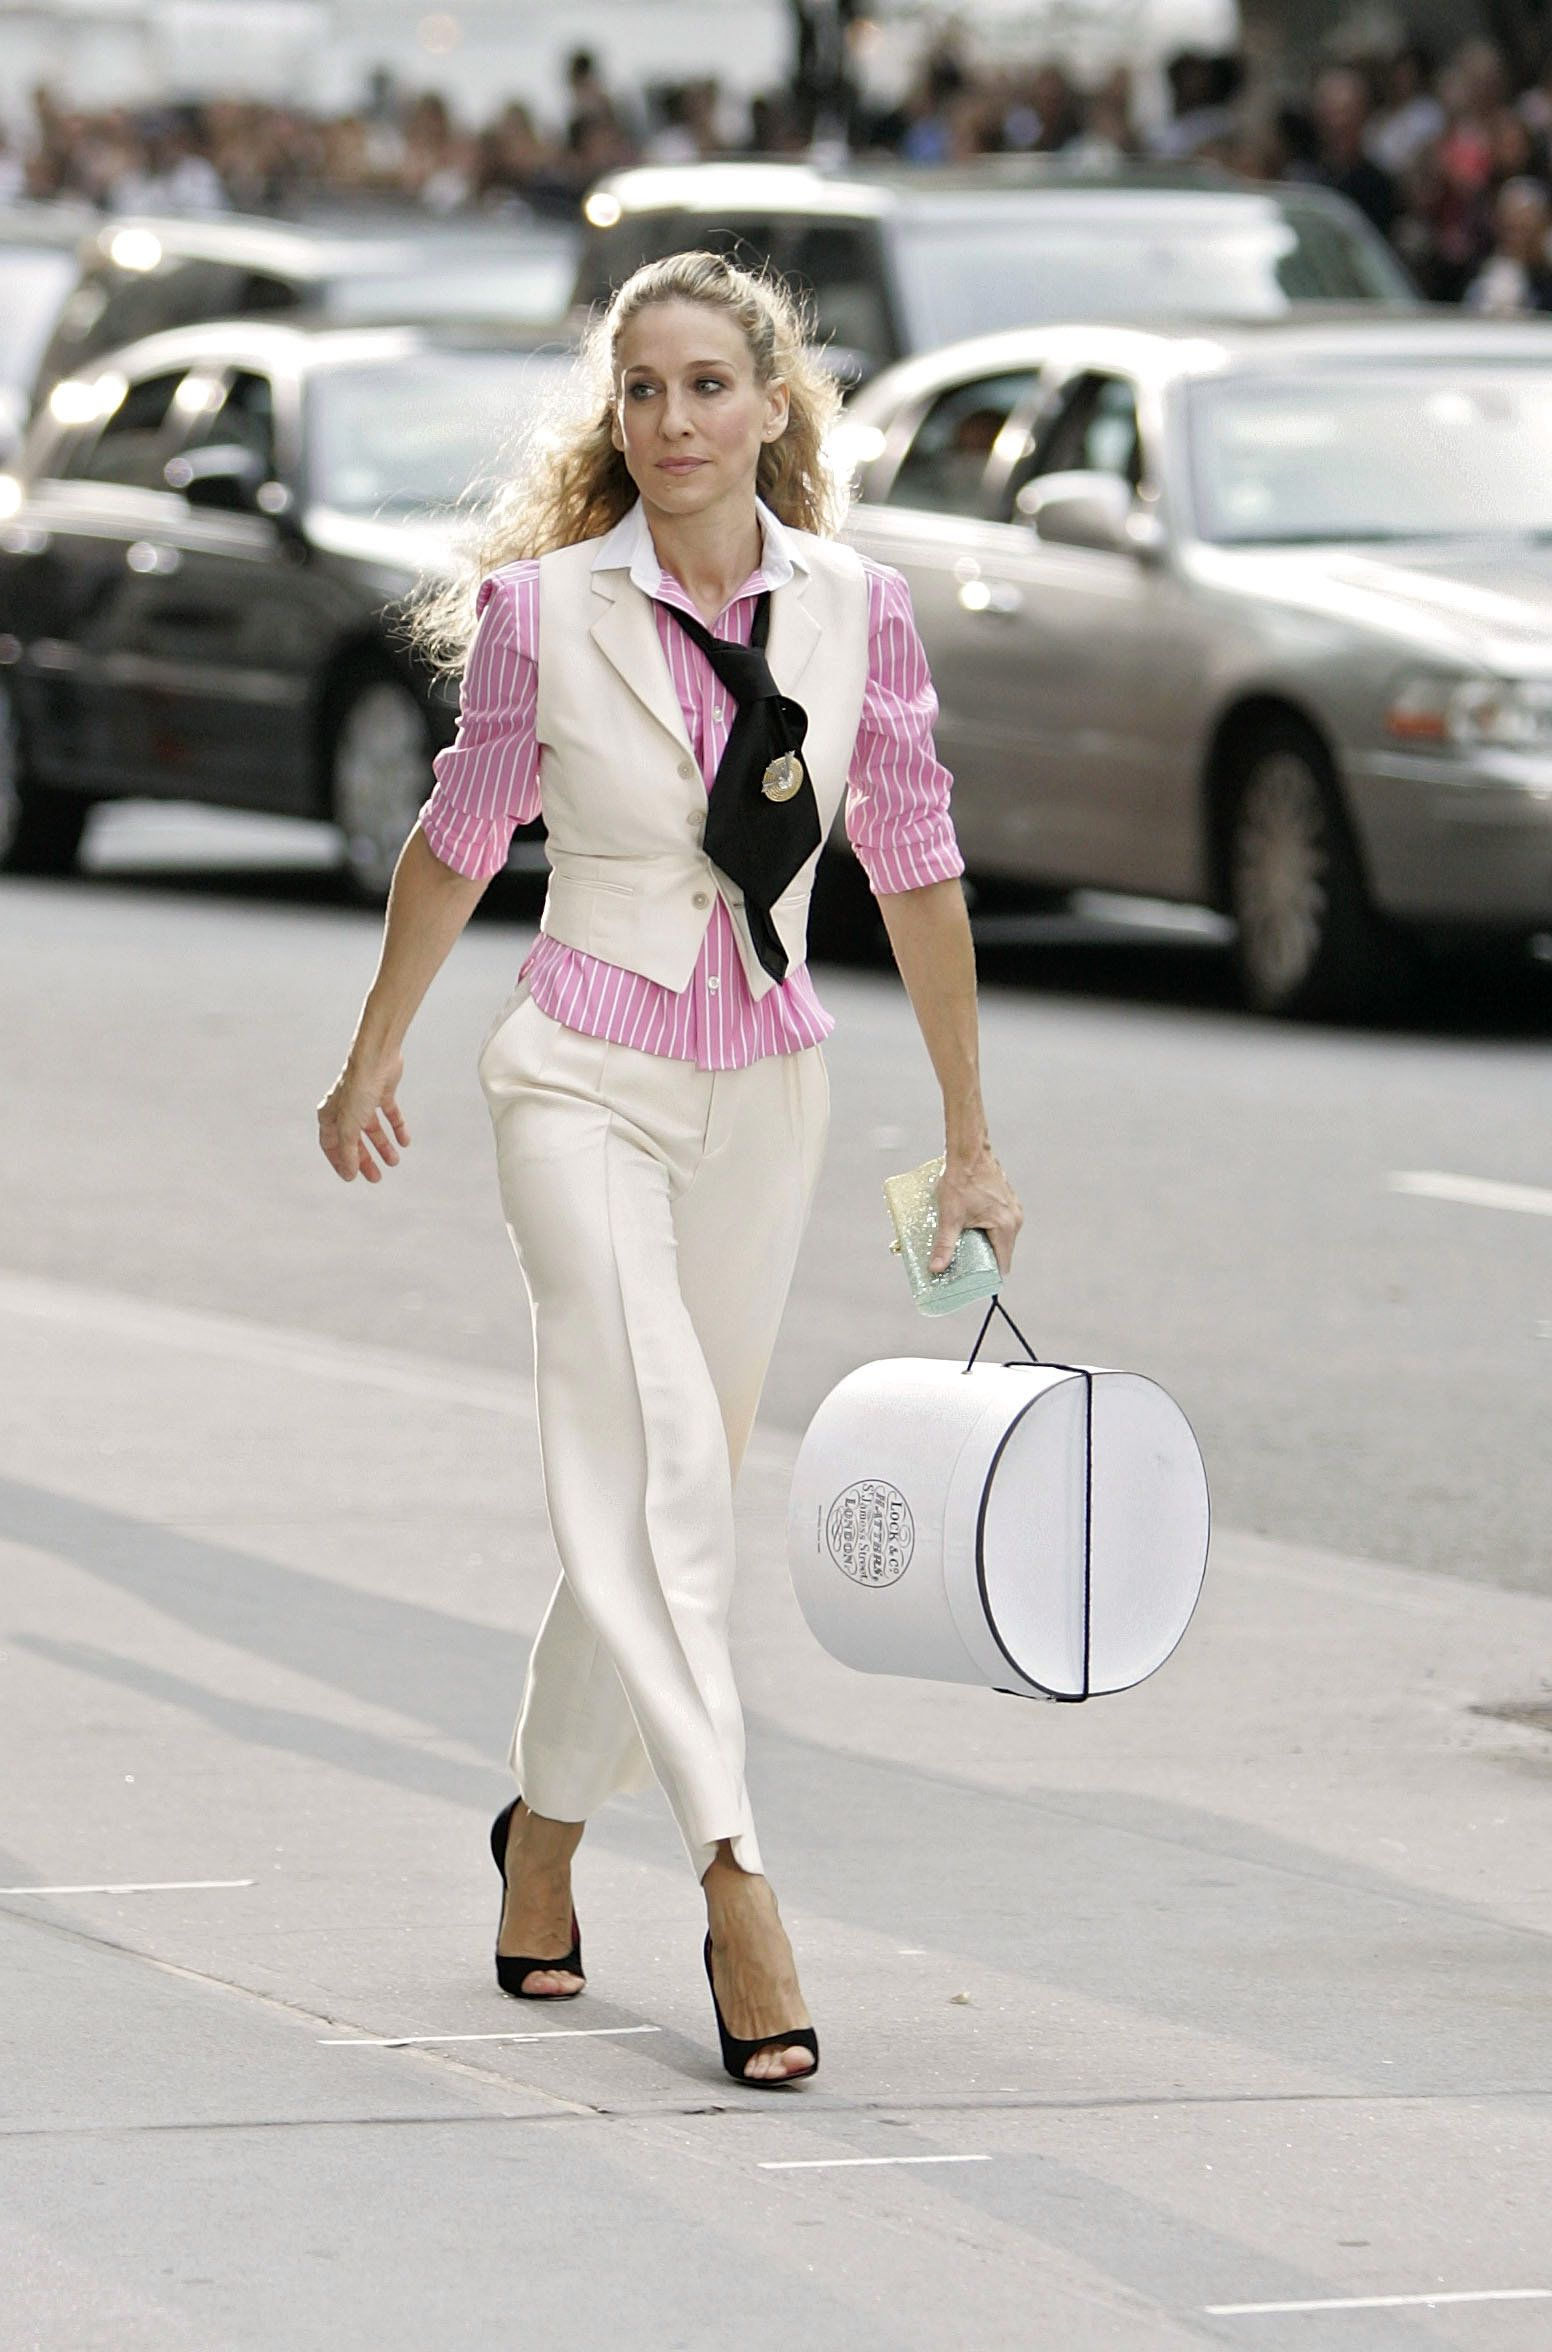 NEW YORK - SEPTEMBER 21:  Actress Sarah Jessica Parker as 'Carrie Bradshaw' on location for 'Sex and the City: The Movie' on September 21, 2007, in New York City.  (Photo by Brian Ach/WireImage)